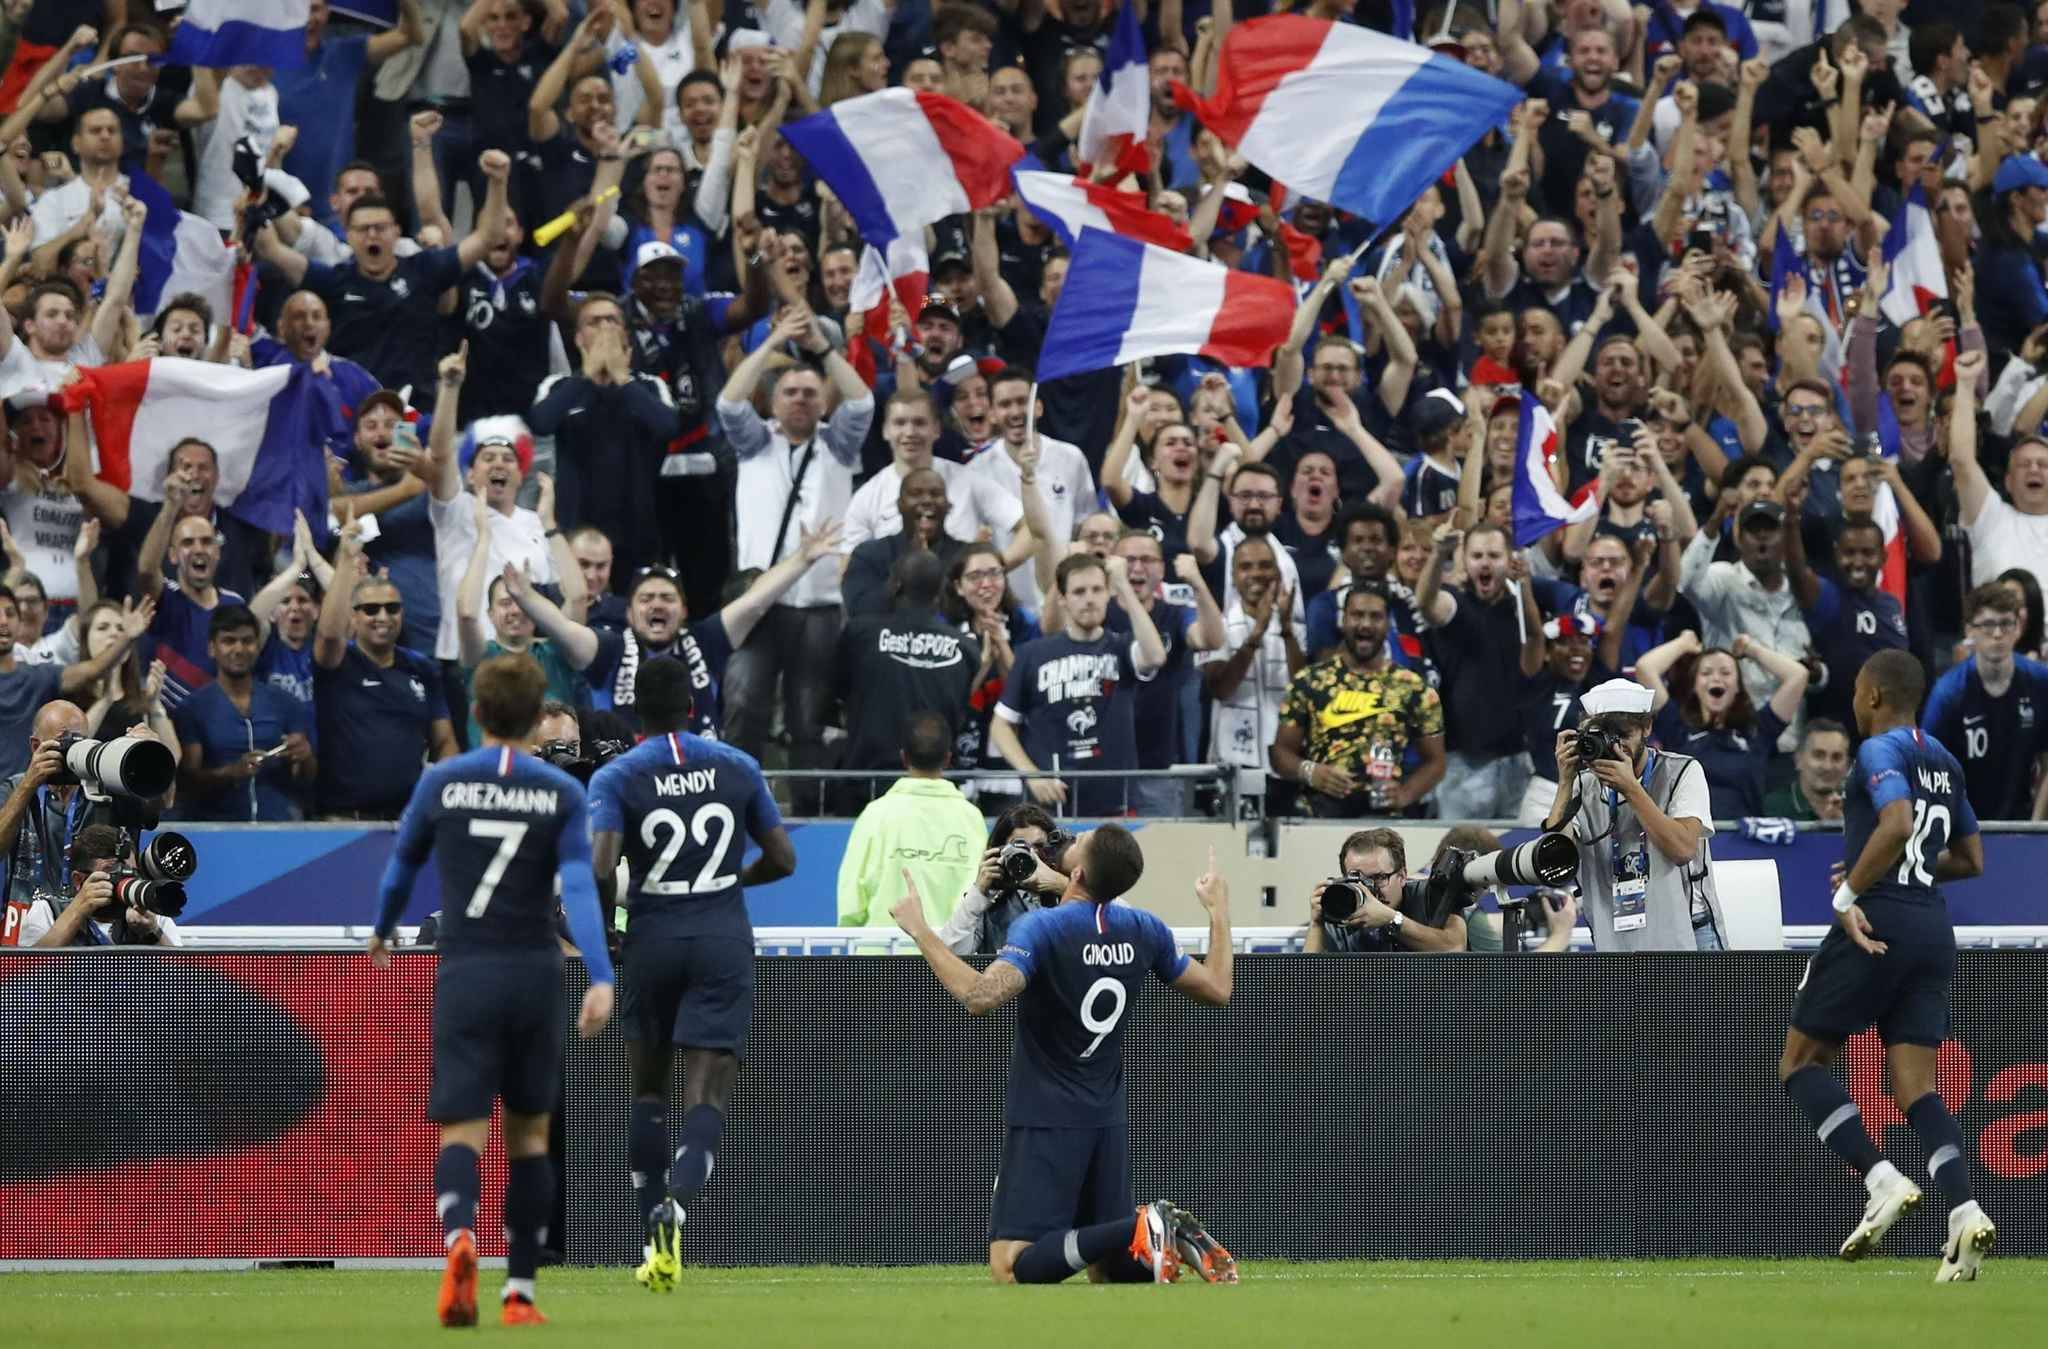 France players celebrate after France's Olivier Giroud, centre, scored his side's second goal during the UEFA Nations League soccer match between France and The Netherlands at the Stade de France stadium in Saint-Denis, outside Paris, France, Sunday, Sept. 9, 2018.